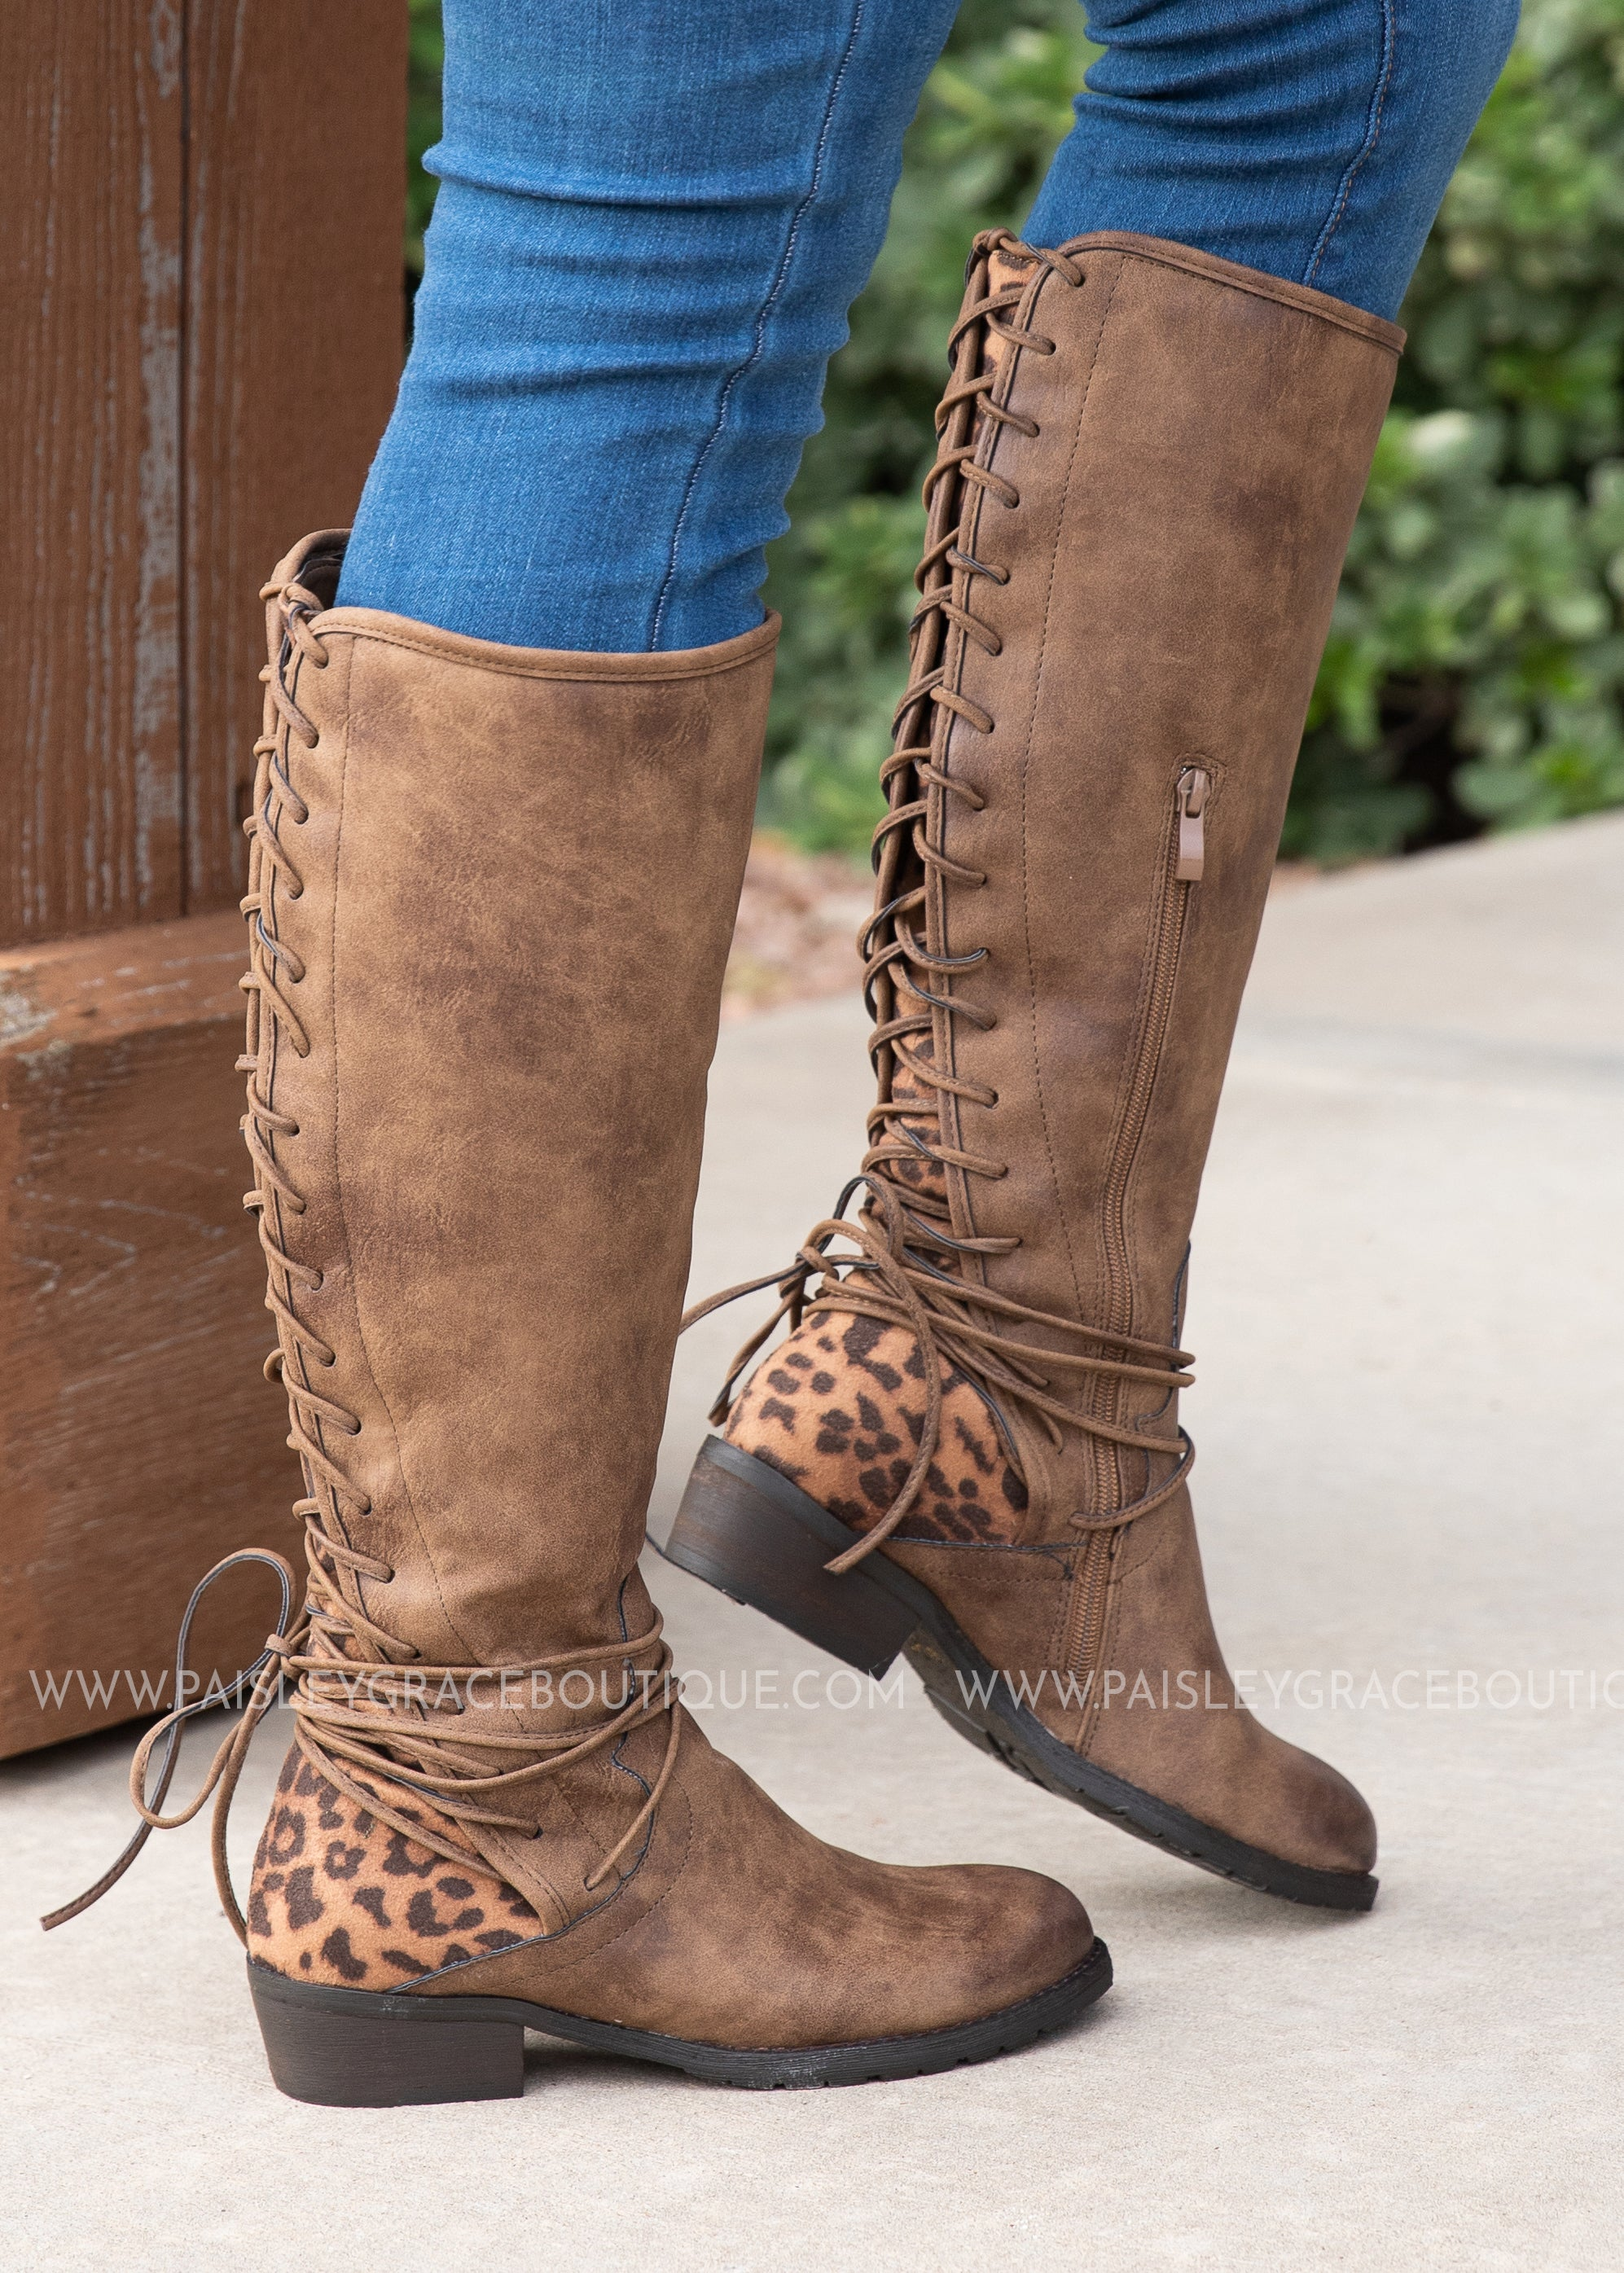 3079c04c17e6d Leopard Back Lace Boots - FINAL SALE - Paisley Grace Boutique